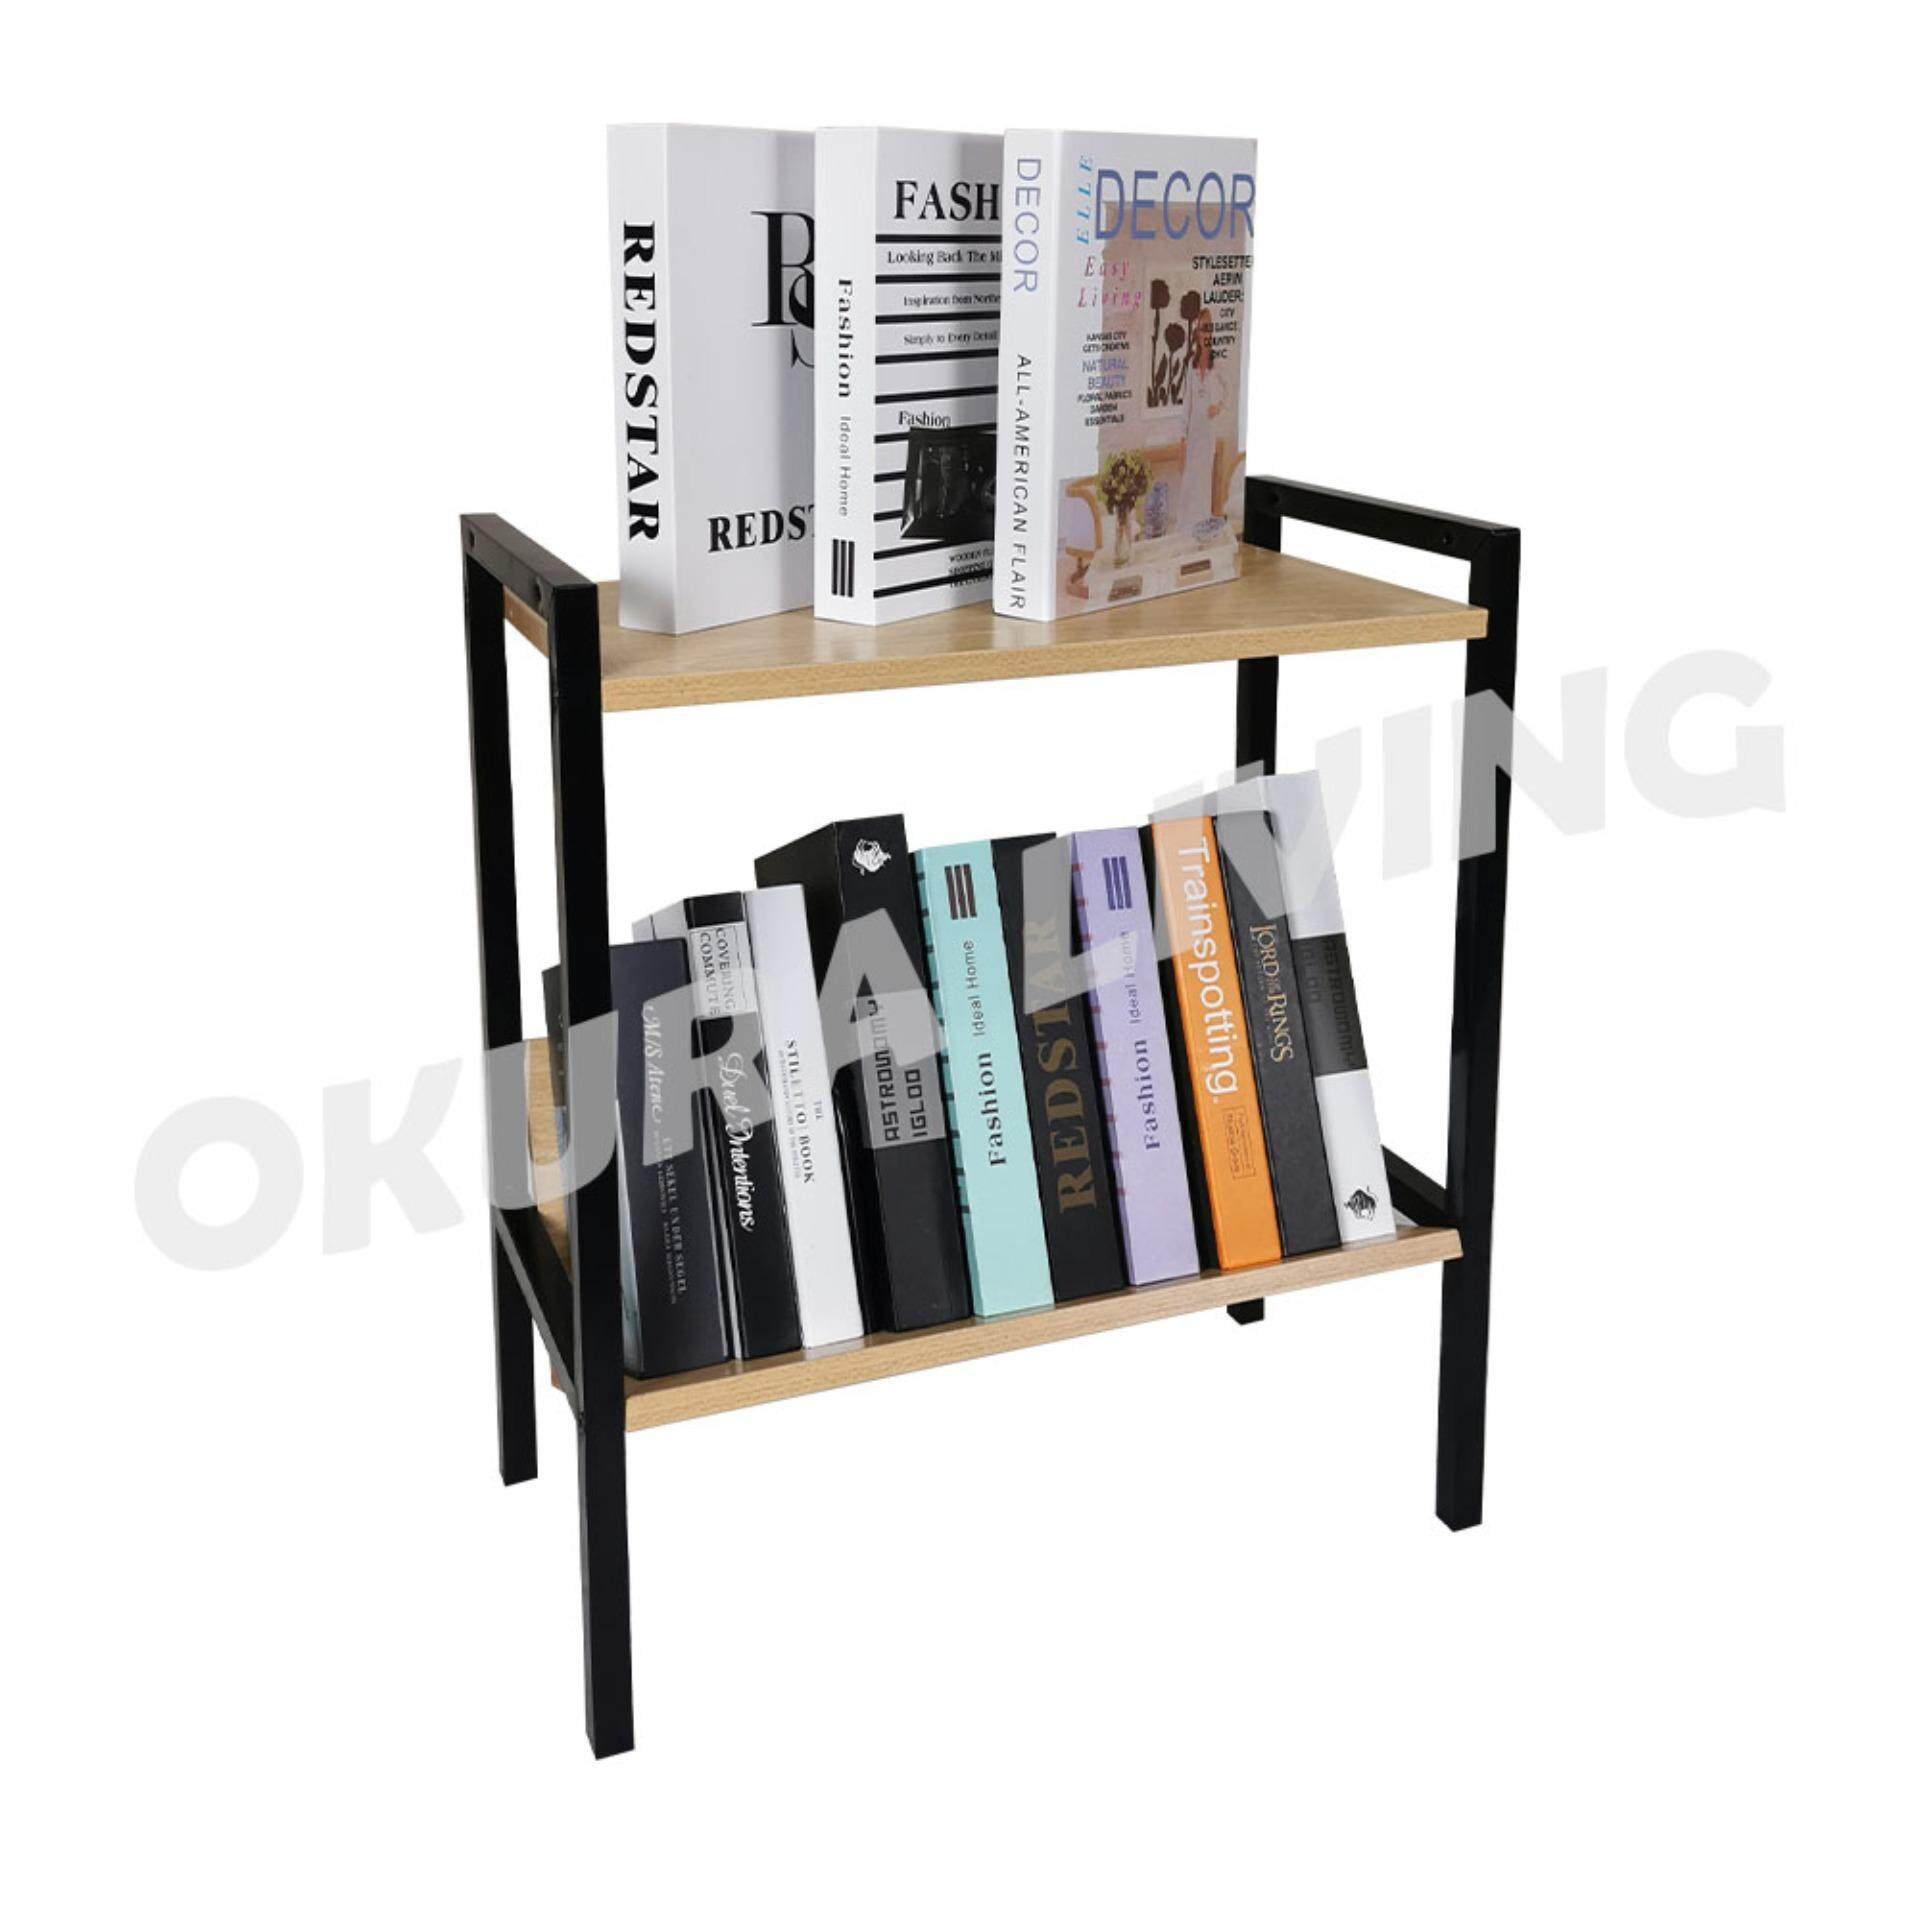 OKURA 2 Tier Multipurpose Book Shelf Home Office